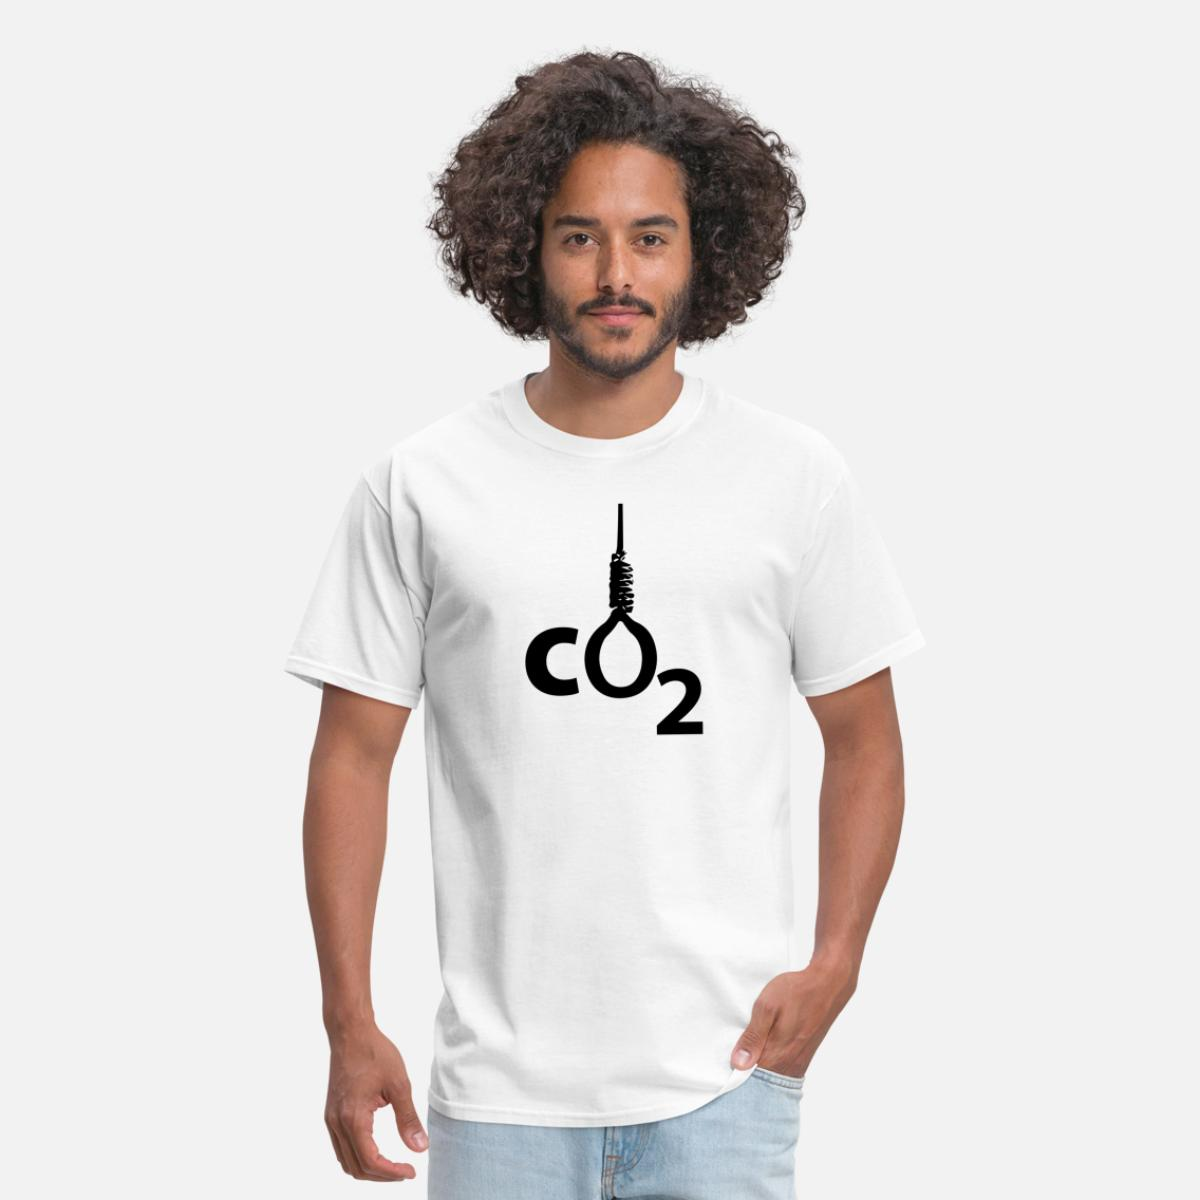 14892860 Co2 Carbon dioxide T shirt Funny Science Tee Men's T-Shirt | Spreadshirt